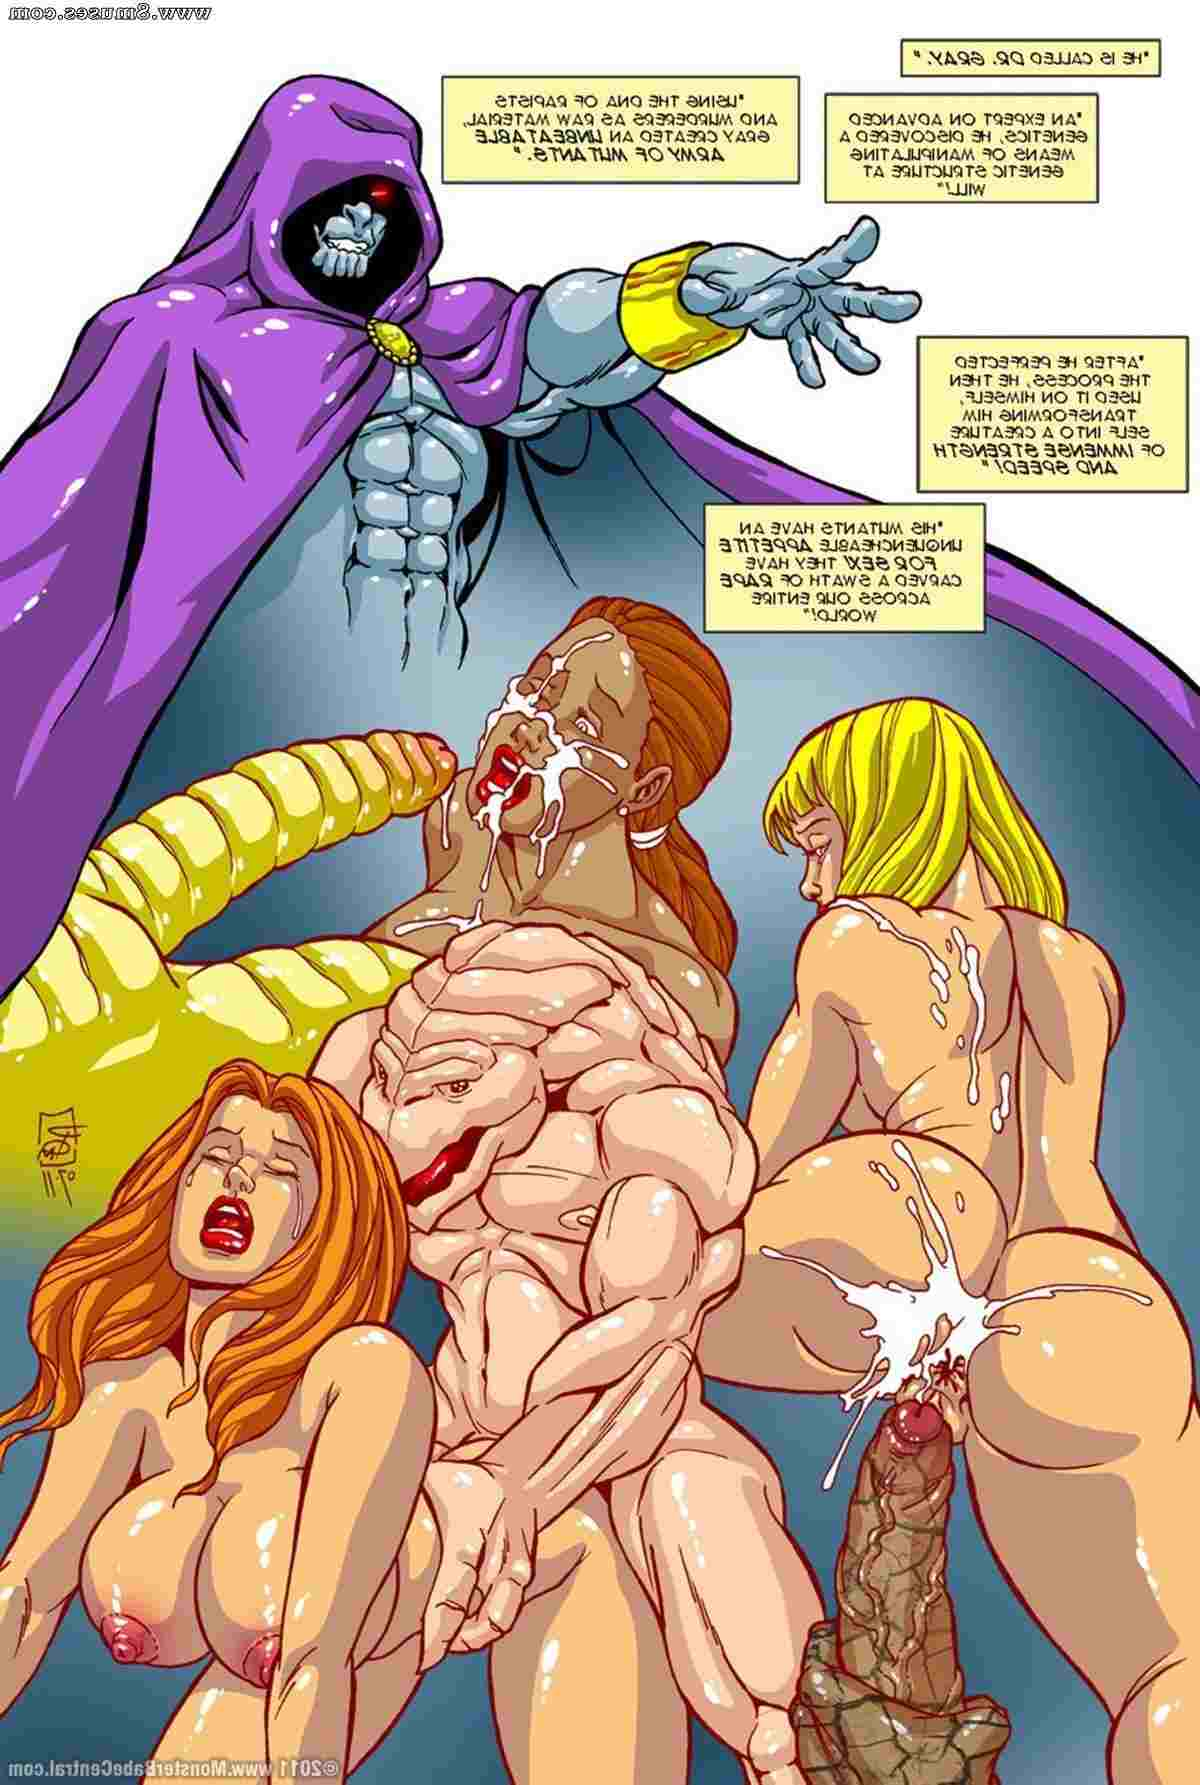 Central-Comics/Monster-Babe-Central/Omega-Fighters Omega_Fighters__8muses_-_Sex_and_Porn_Comics_52.jpg